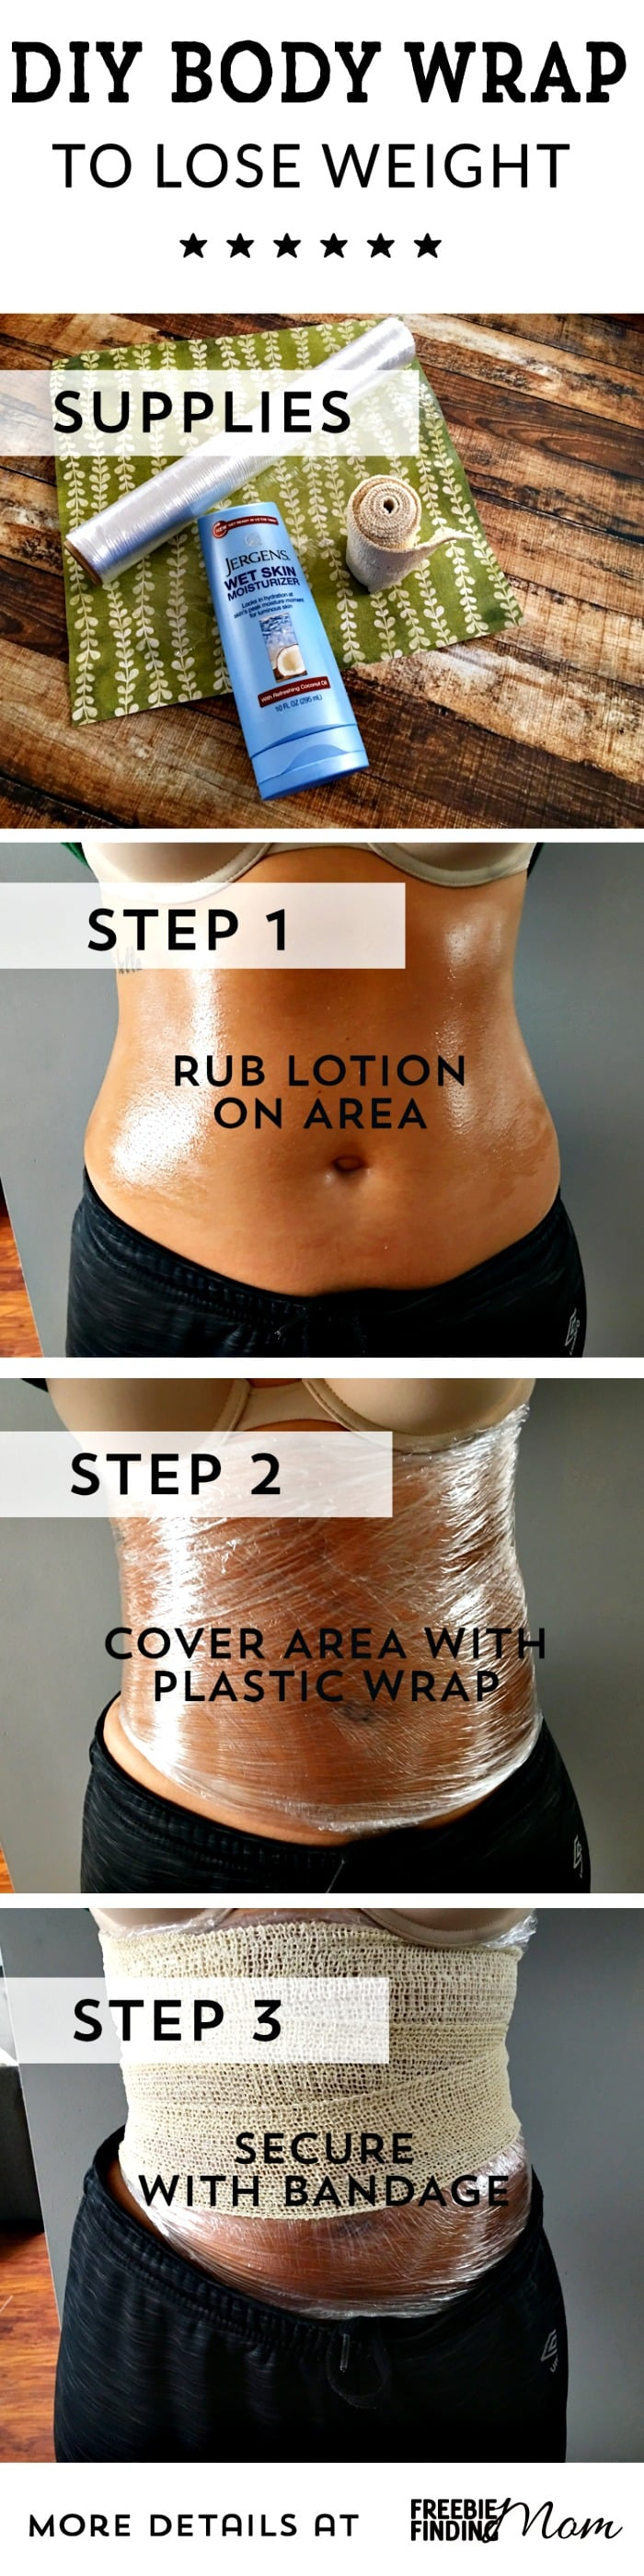 diy body wraps to lose weight photo - 1